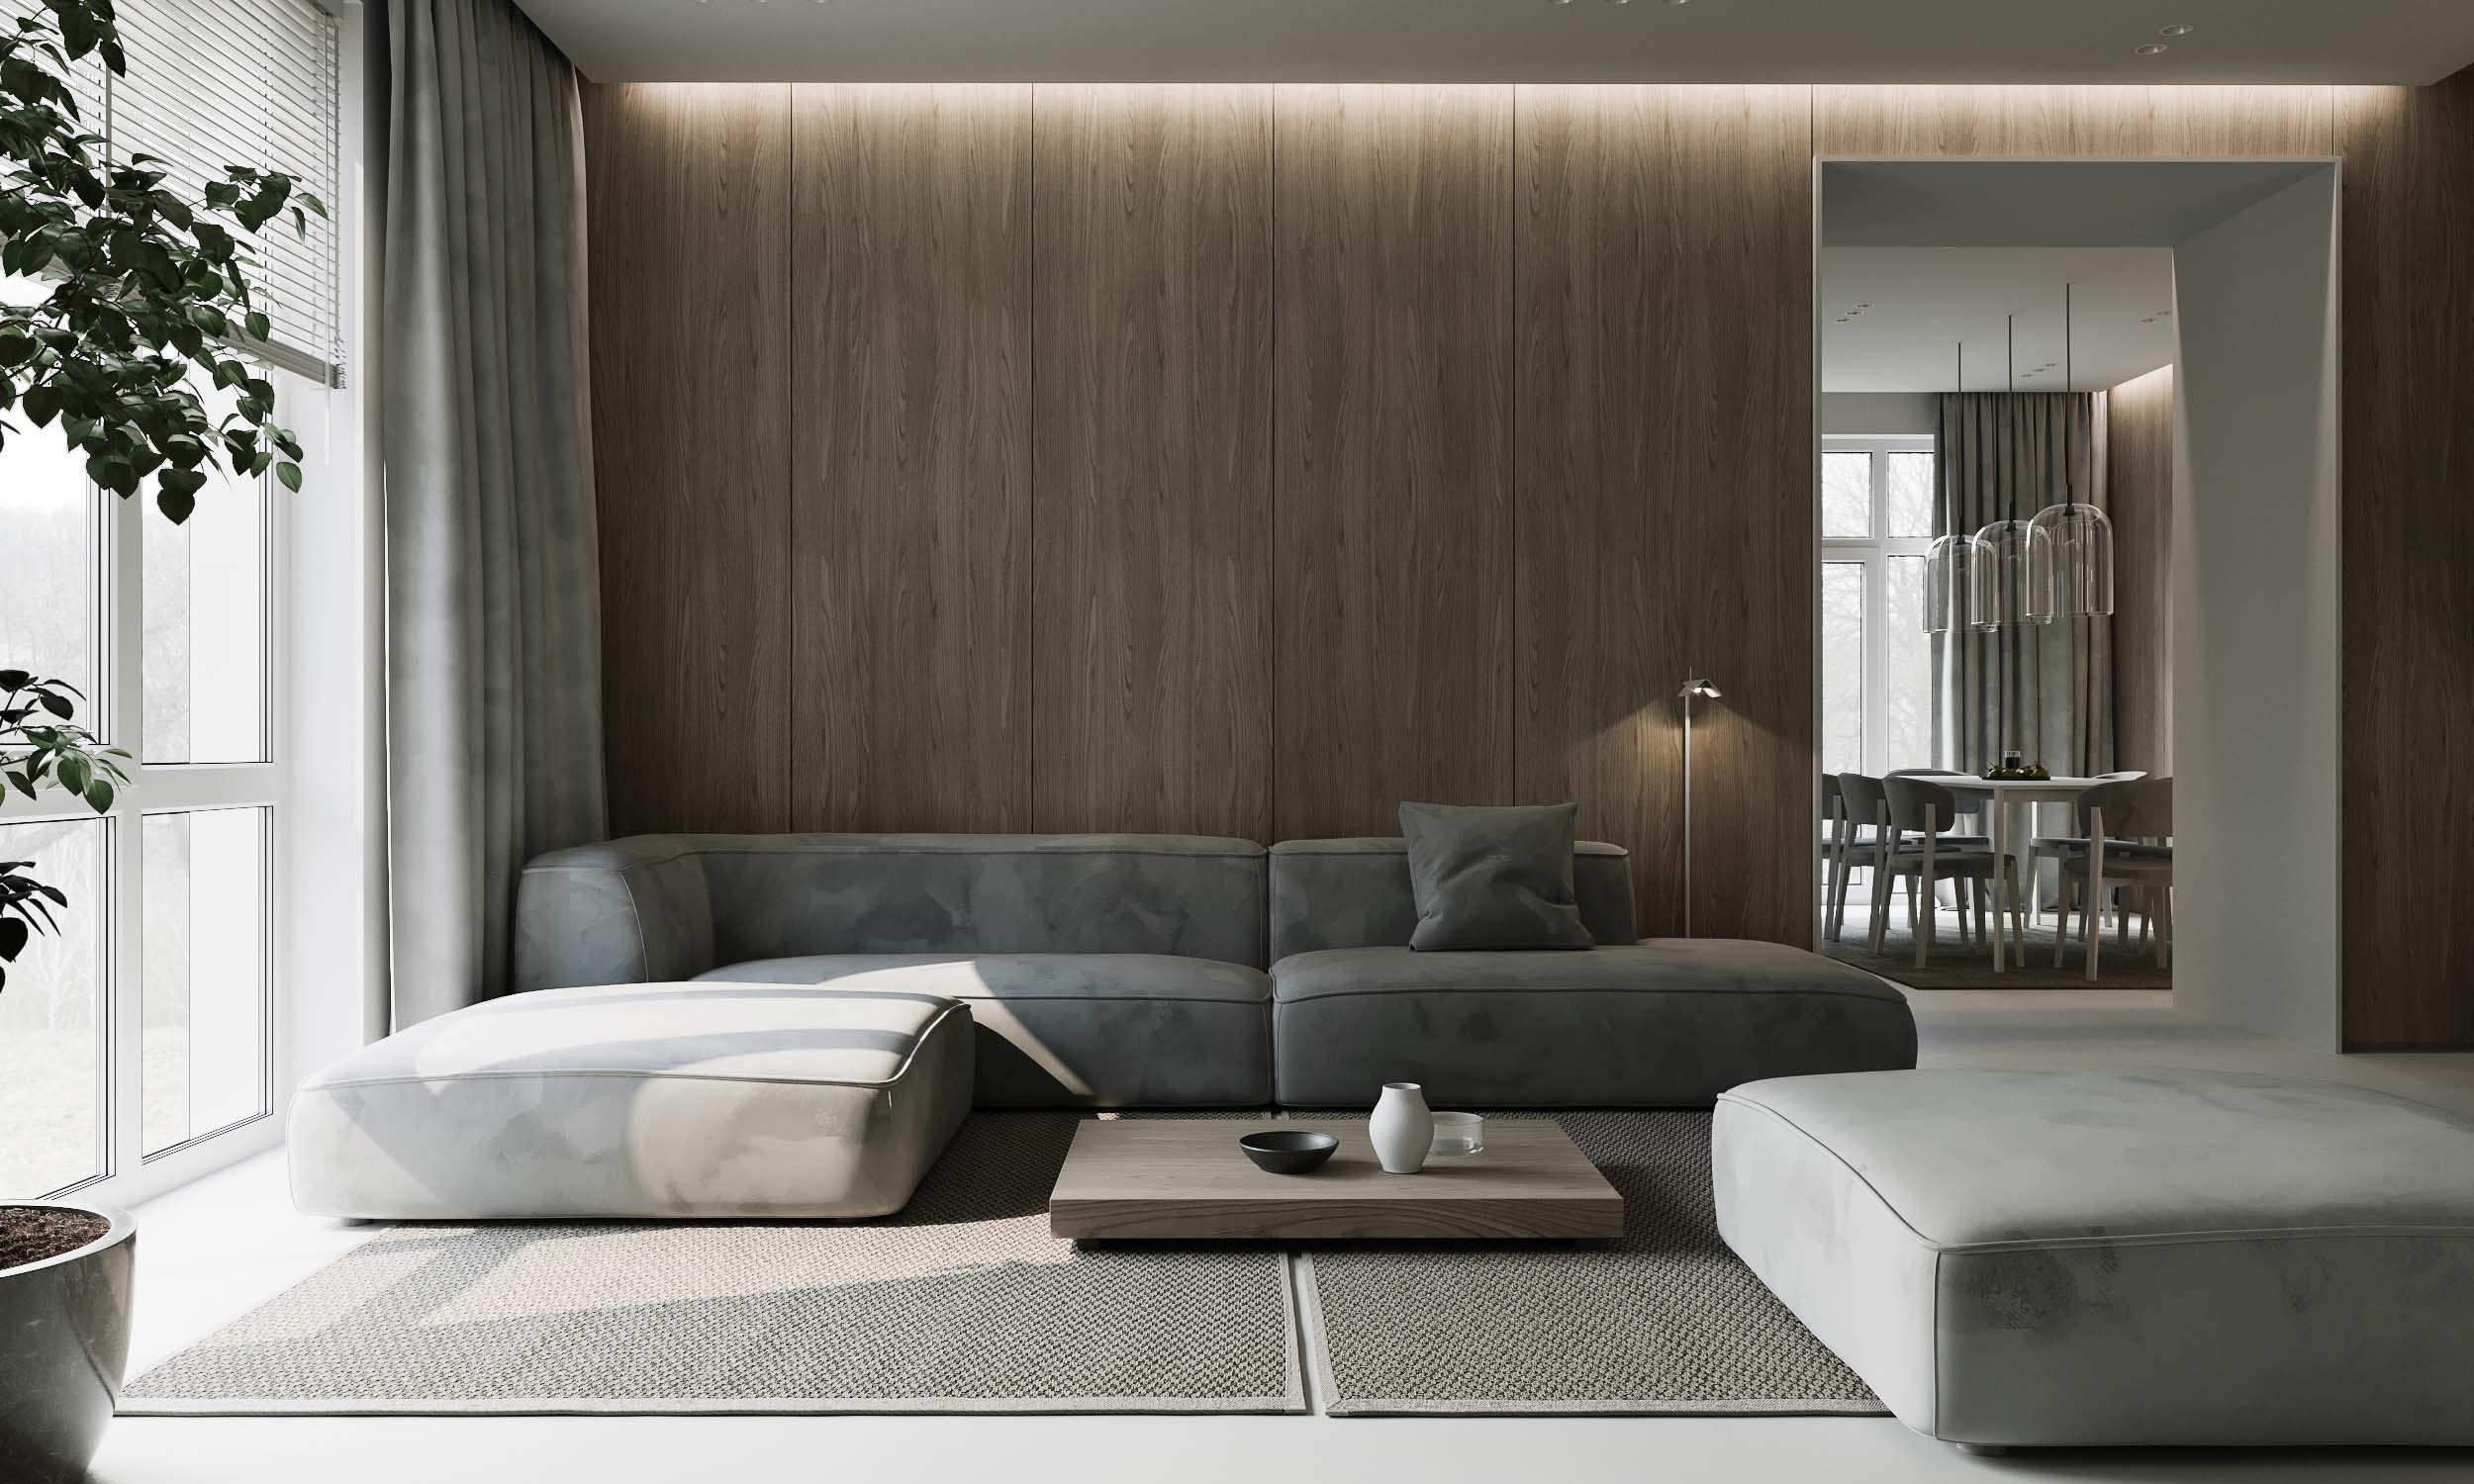 living room with interior design in neutral colors